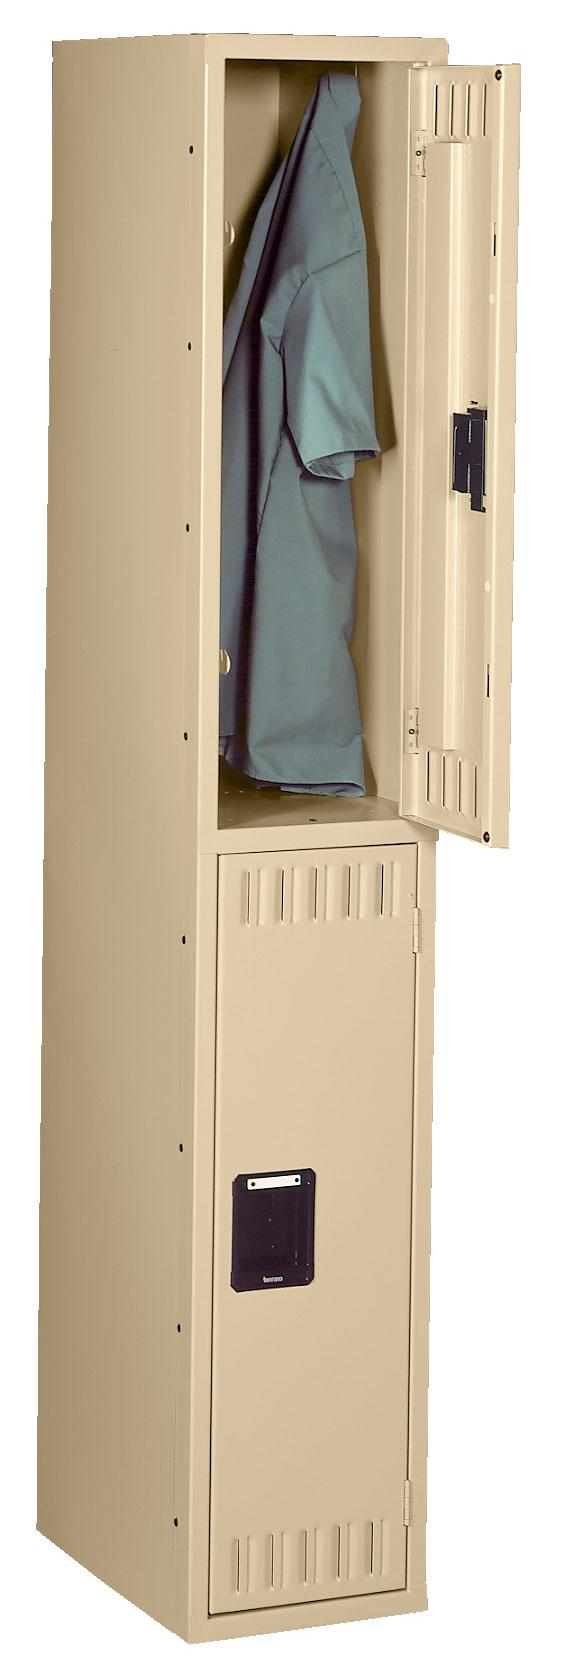 Double Tier Lockers Without Legs - 2 Openings